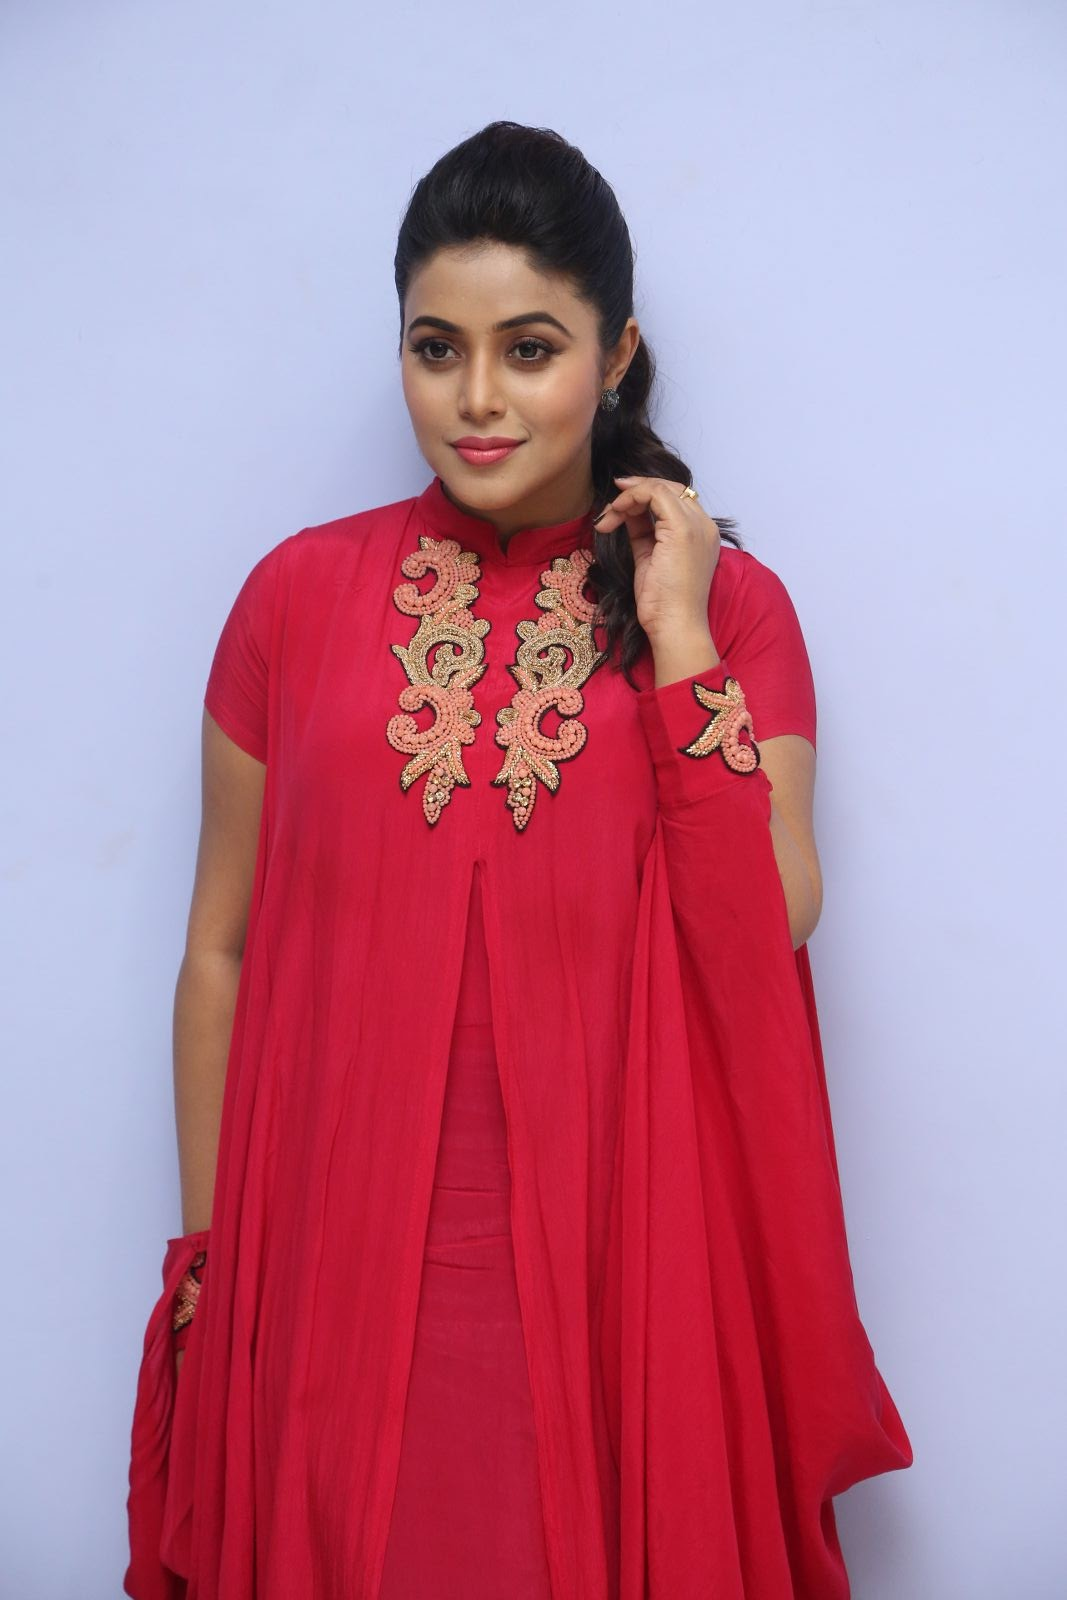 poorna new glamorous photos-HQ-Photo-2